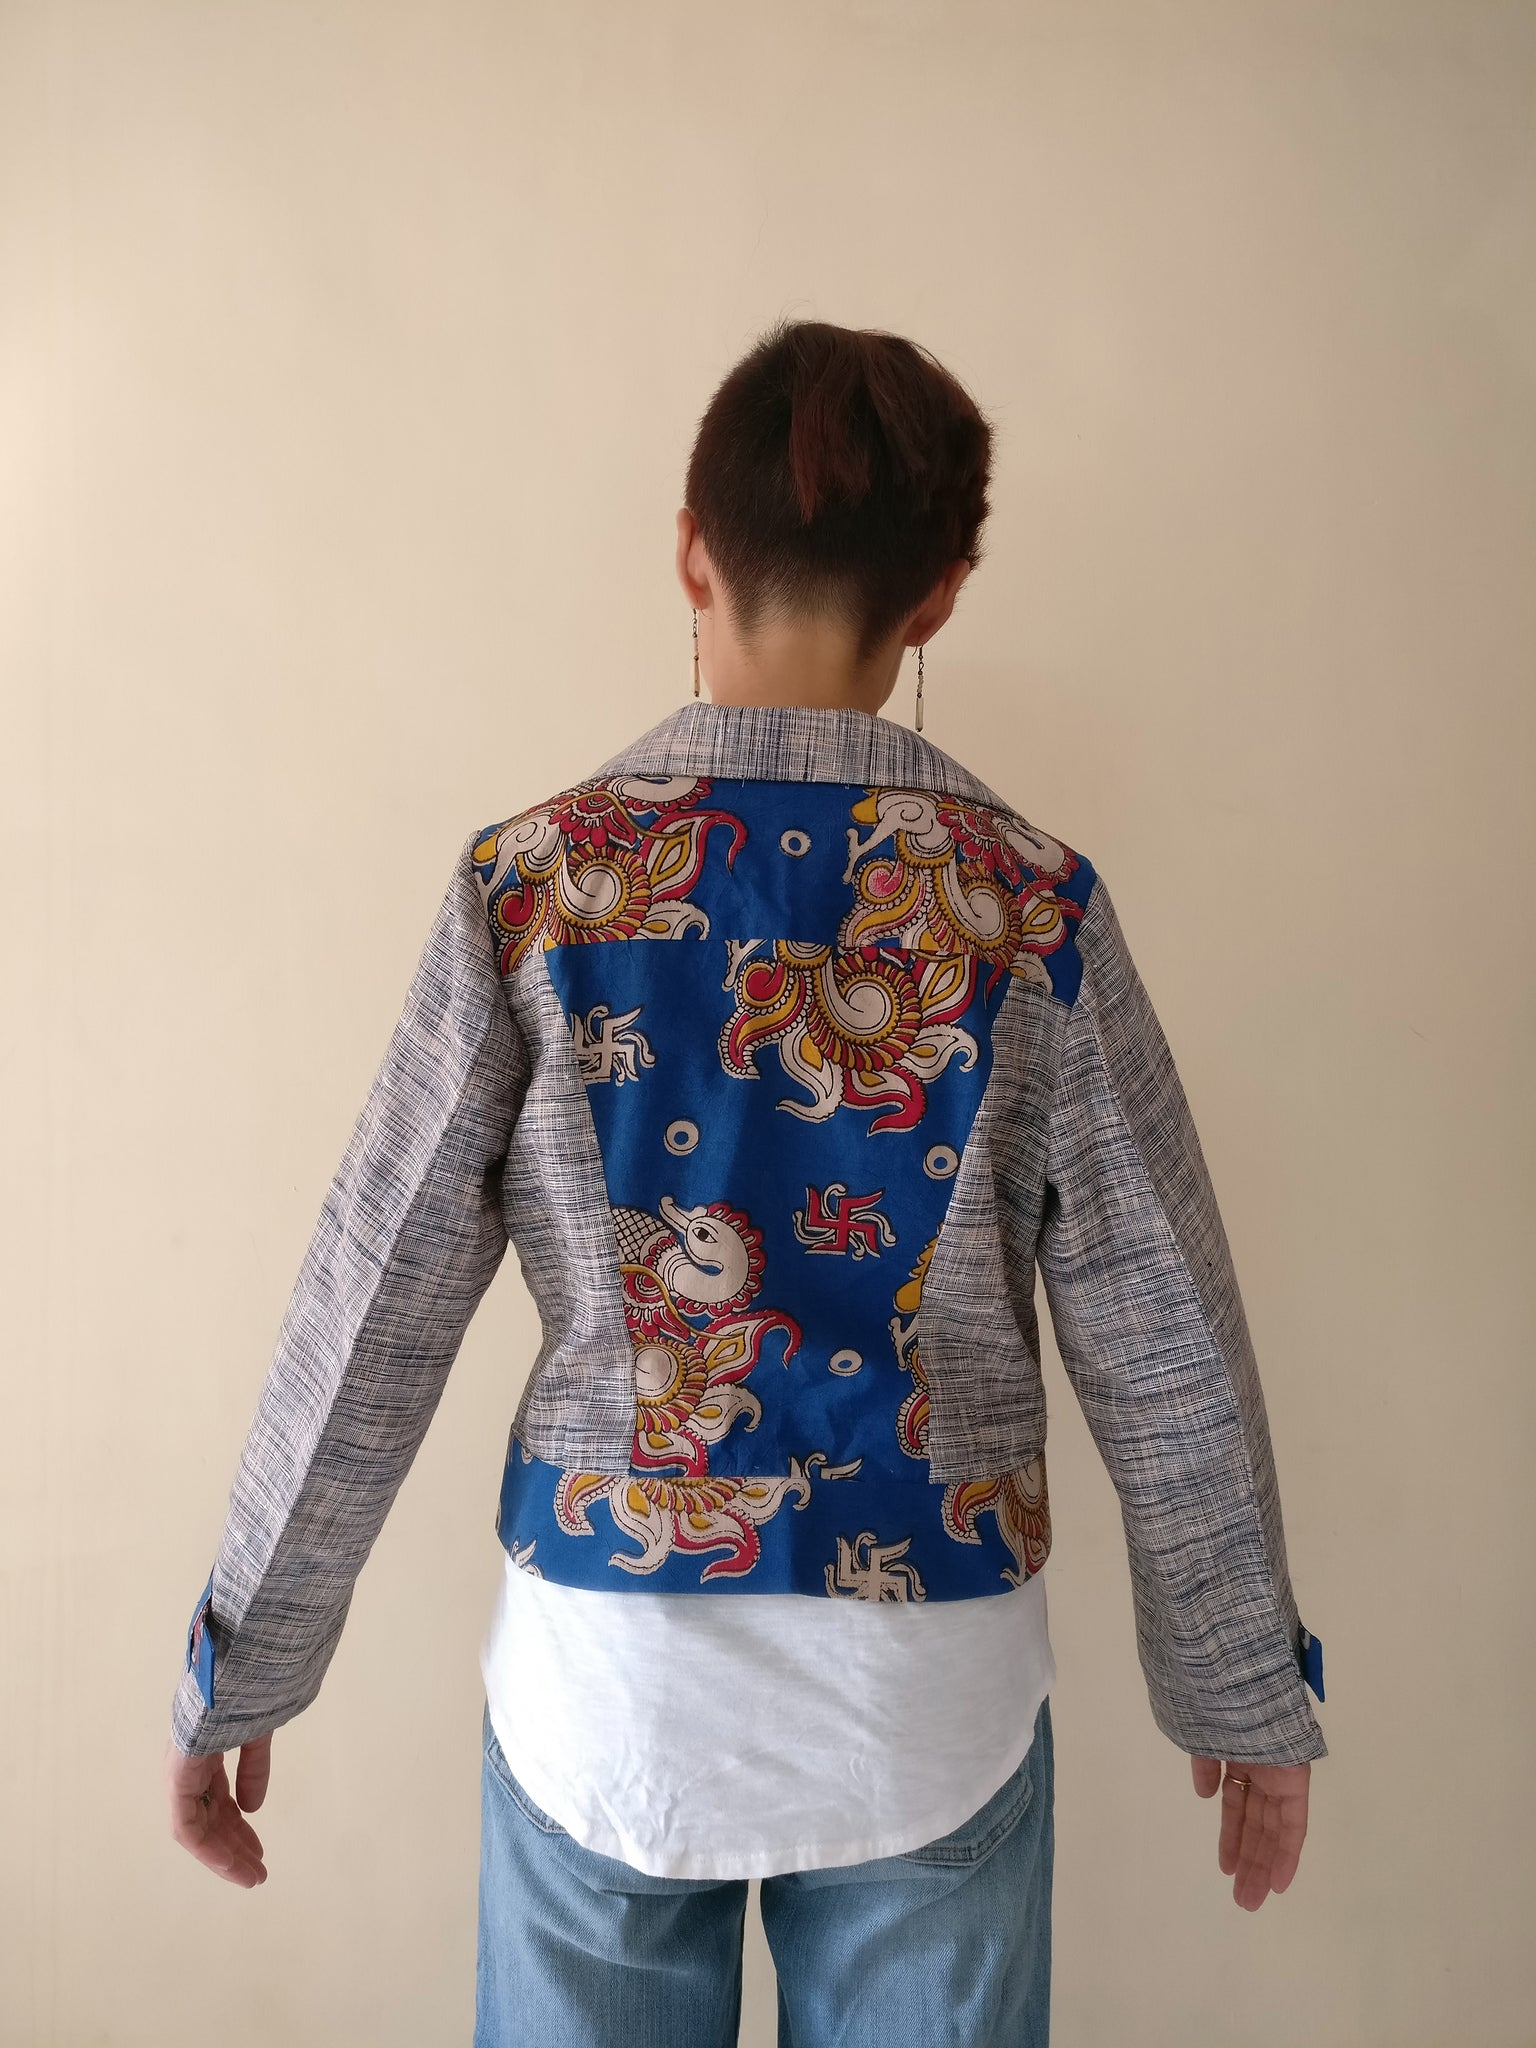 MIRCHI KOMACHI blue Ladies / Women's Biker Jacket (back side). It is India's answer for the biker jacket which is a basic item in women's wardrobe! The materials are Cotton Khadi and Cotton Kalamkari. Enjoy the beauty of natural materials and Indian handcrafts! Shop online!